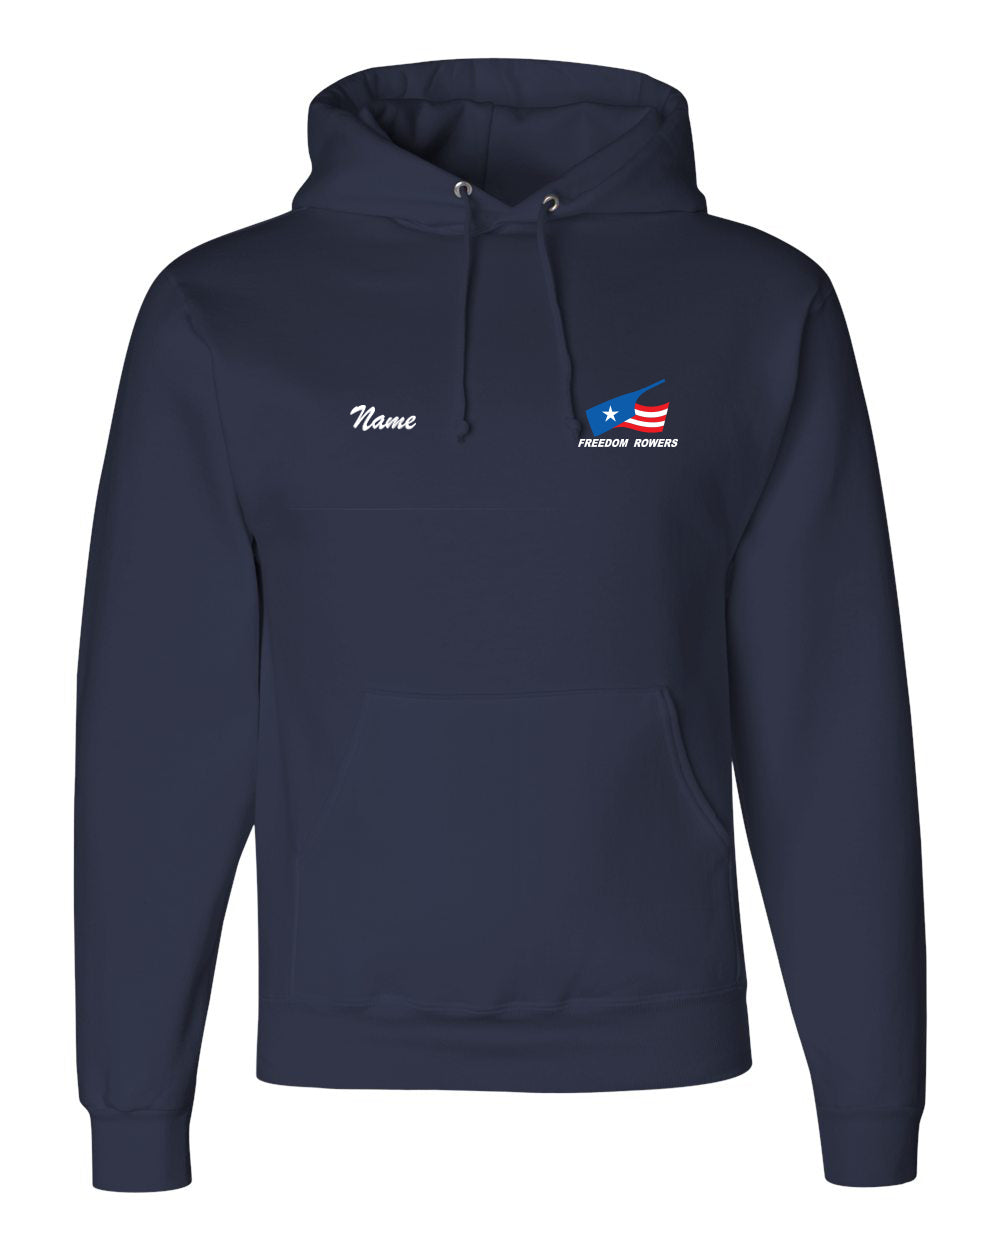 50/50 Hooded Freedom Rowers Pullover Sweatshirt